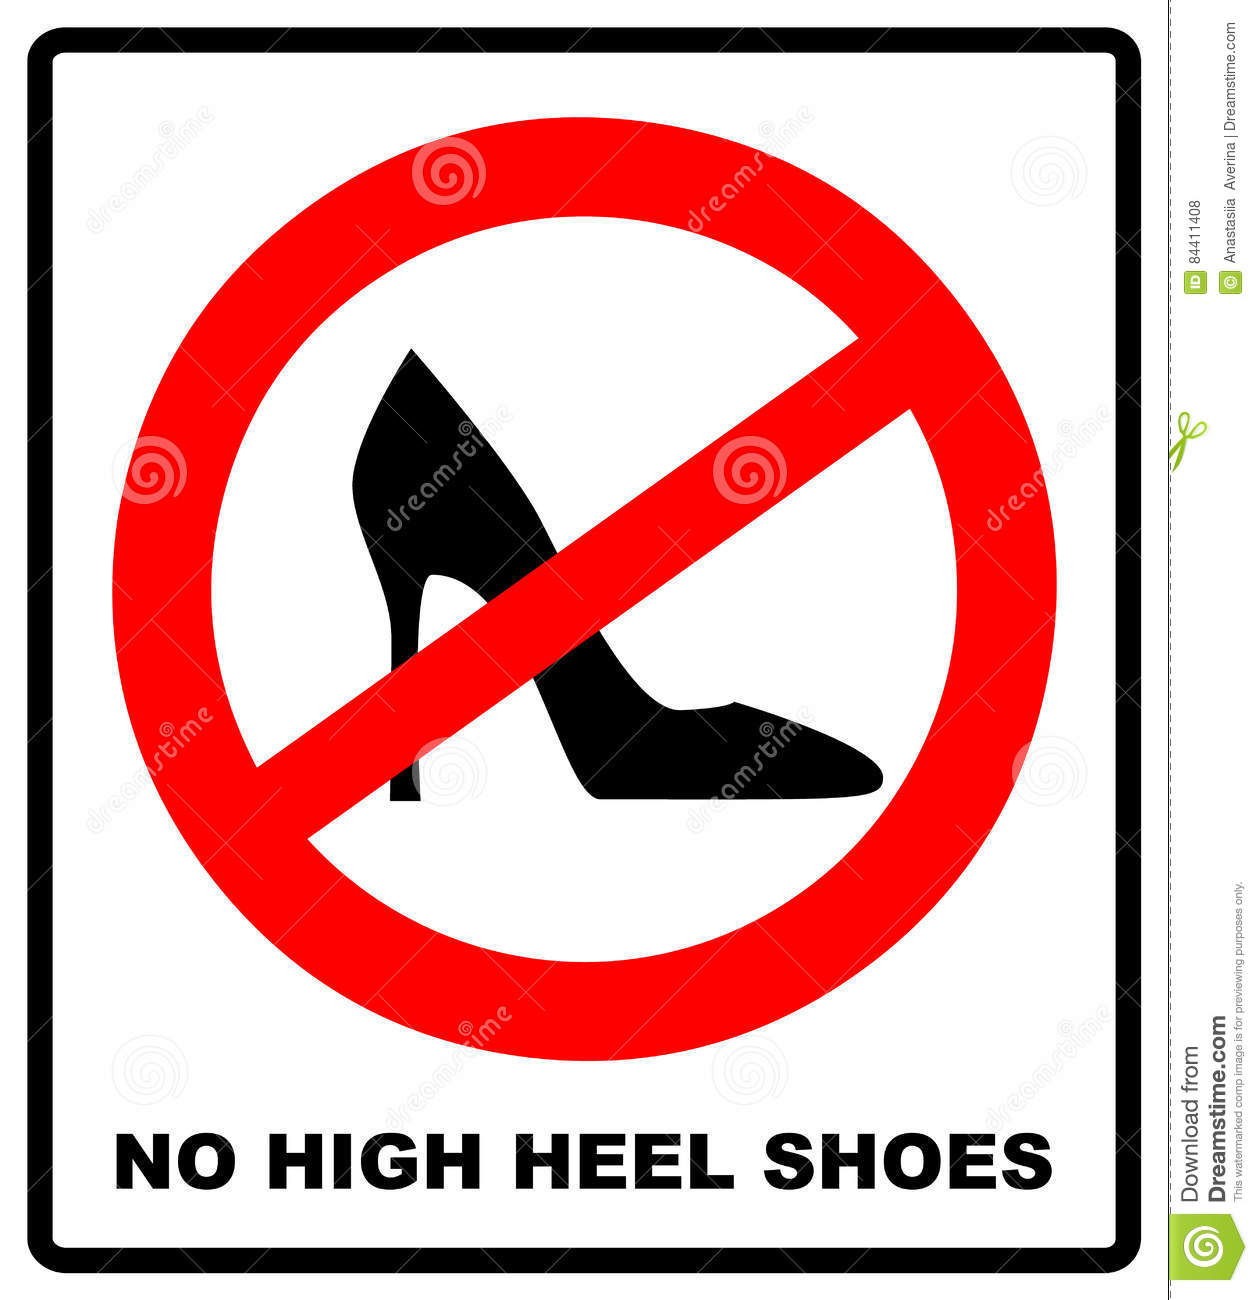 705fd543b025 No High Heel Shoes Sign On White Background. Vector Illustration ...